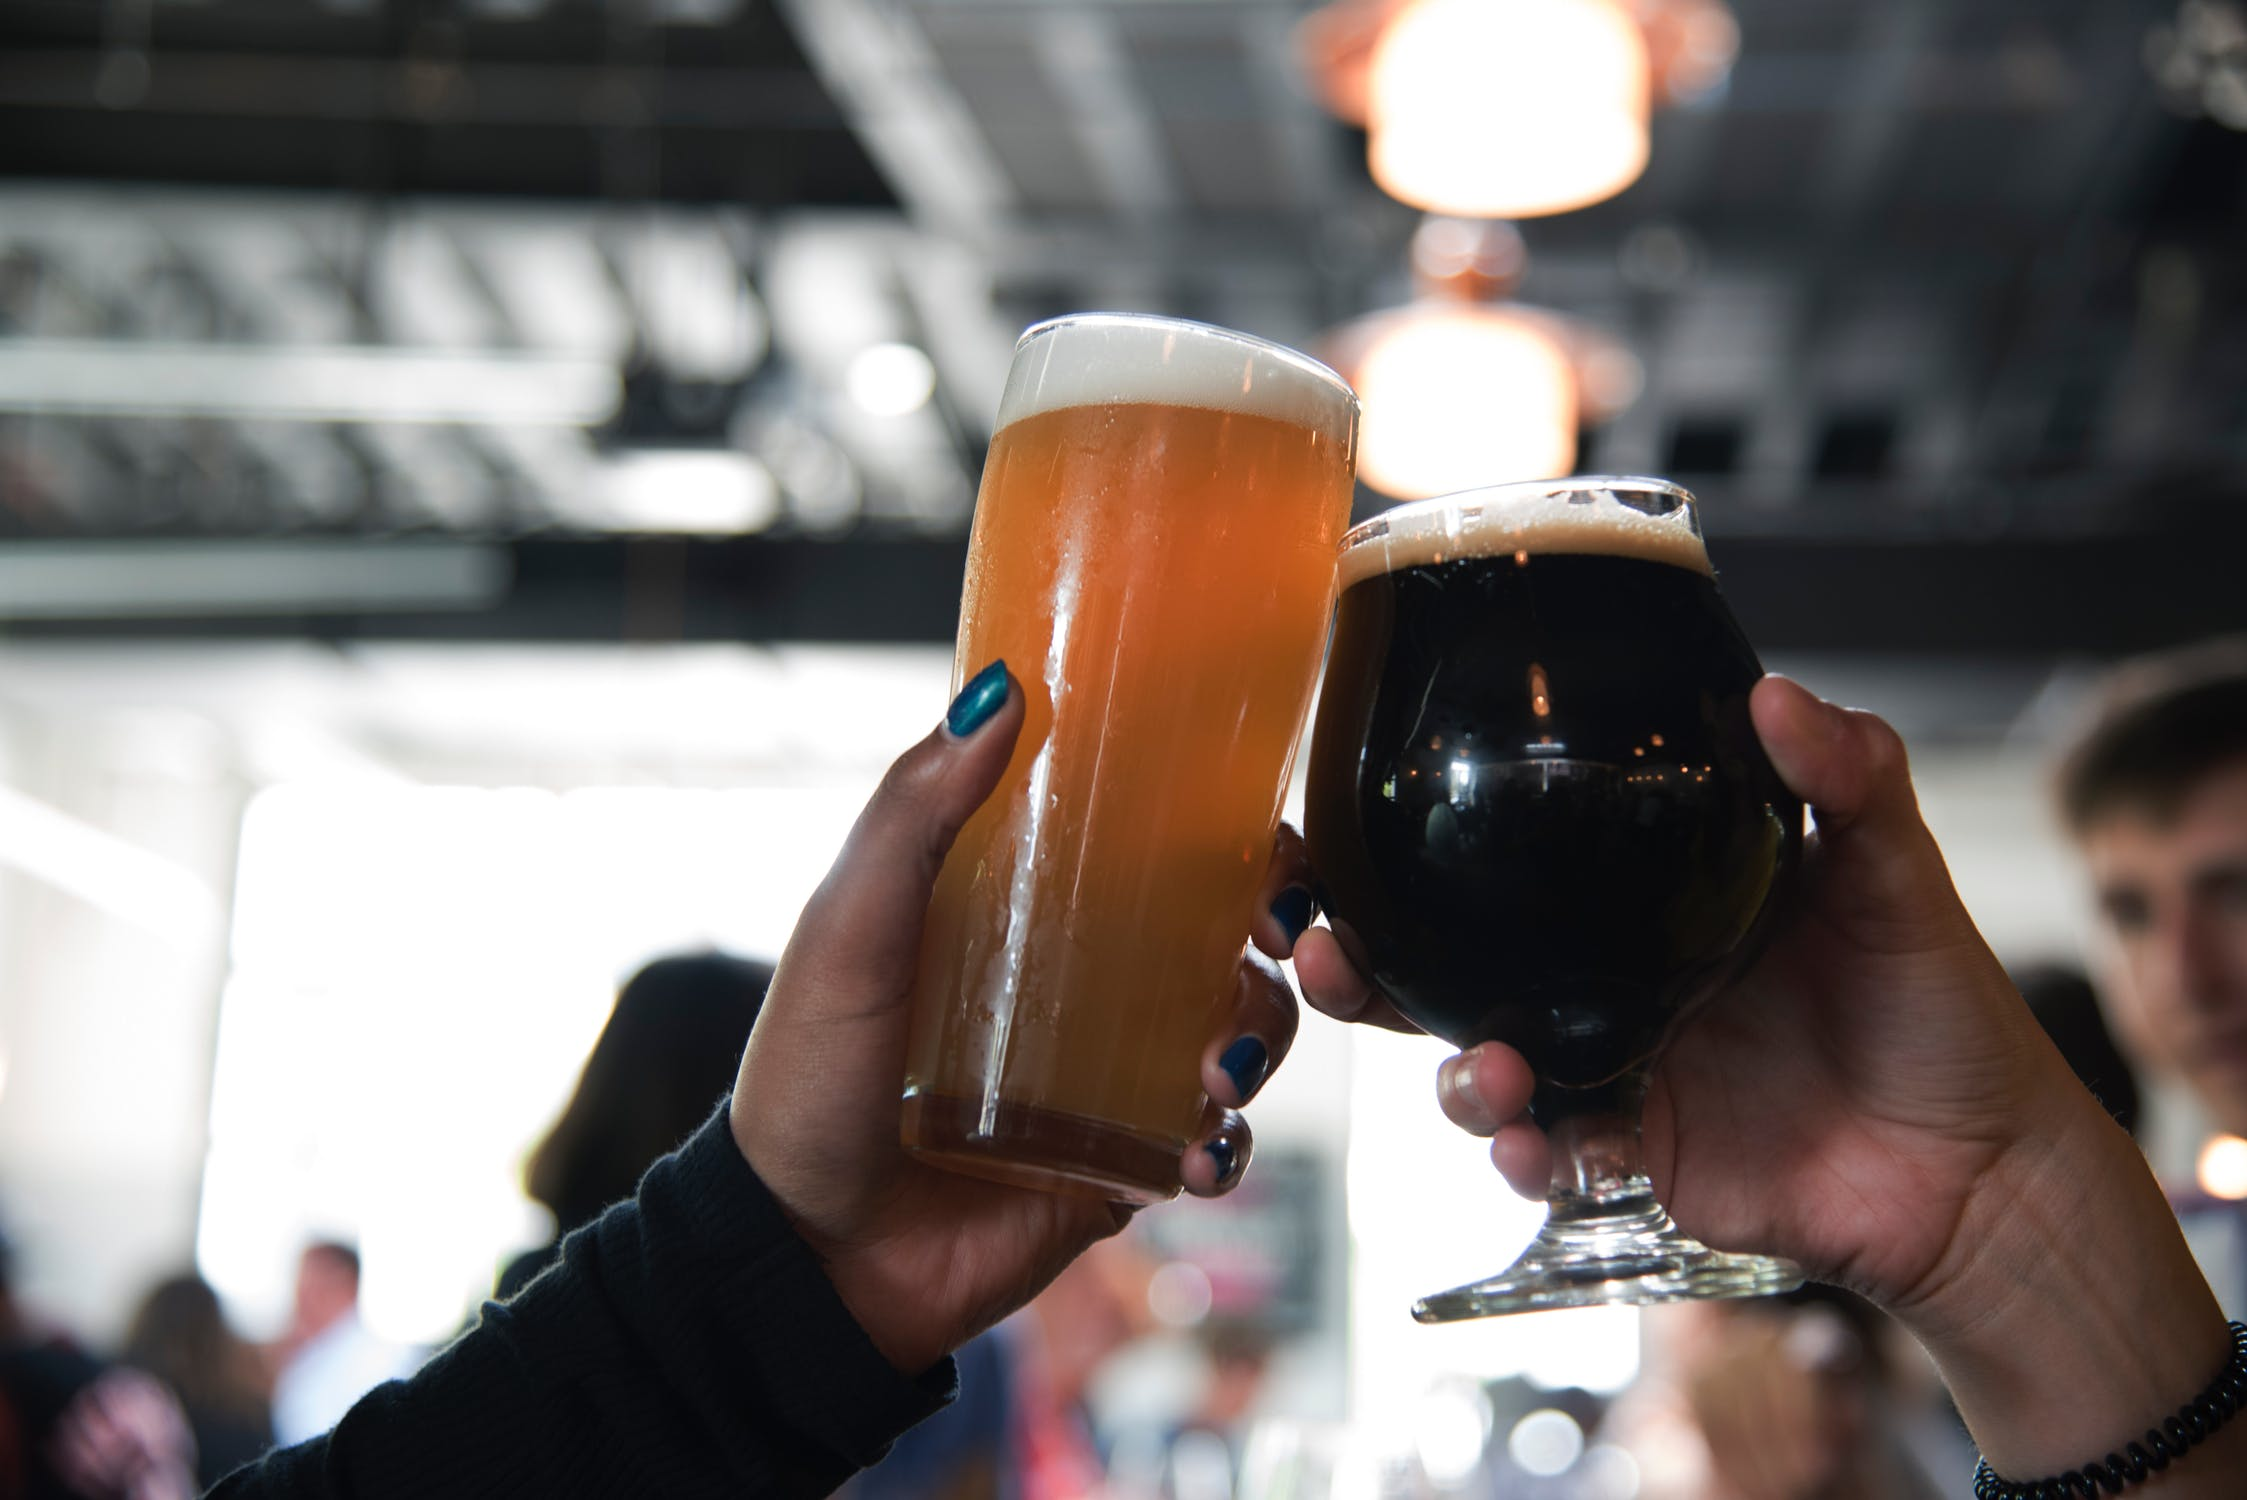 two hands raising and clinking beer-filled glasses in a toast.